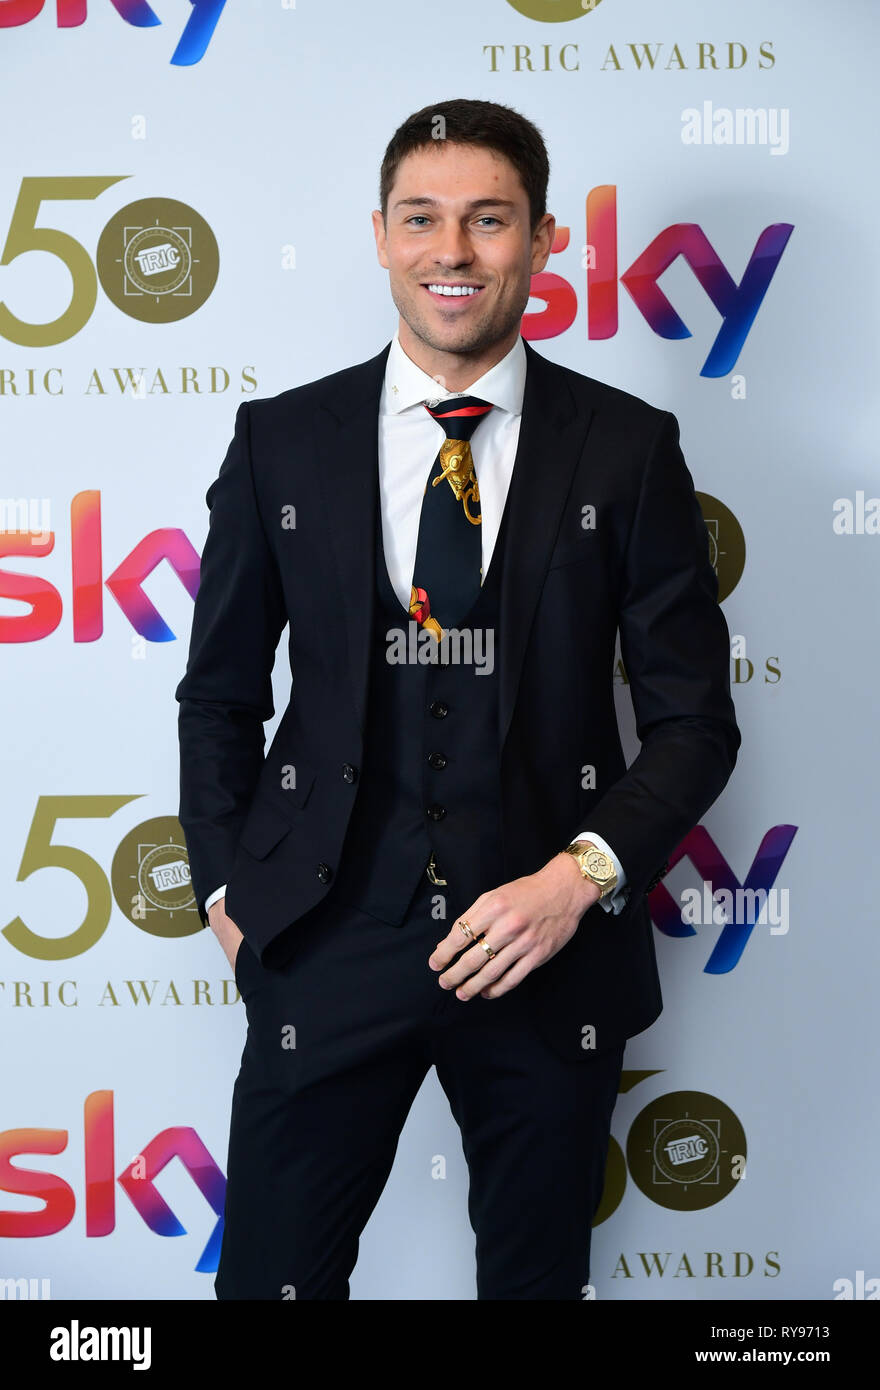 Joey Essex attending the TRIC Awards 2019 50th Birthday Celebration held at the Grosvenor House Hotel, London. - Stock Image